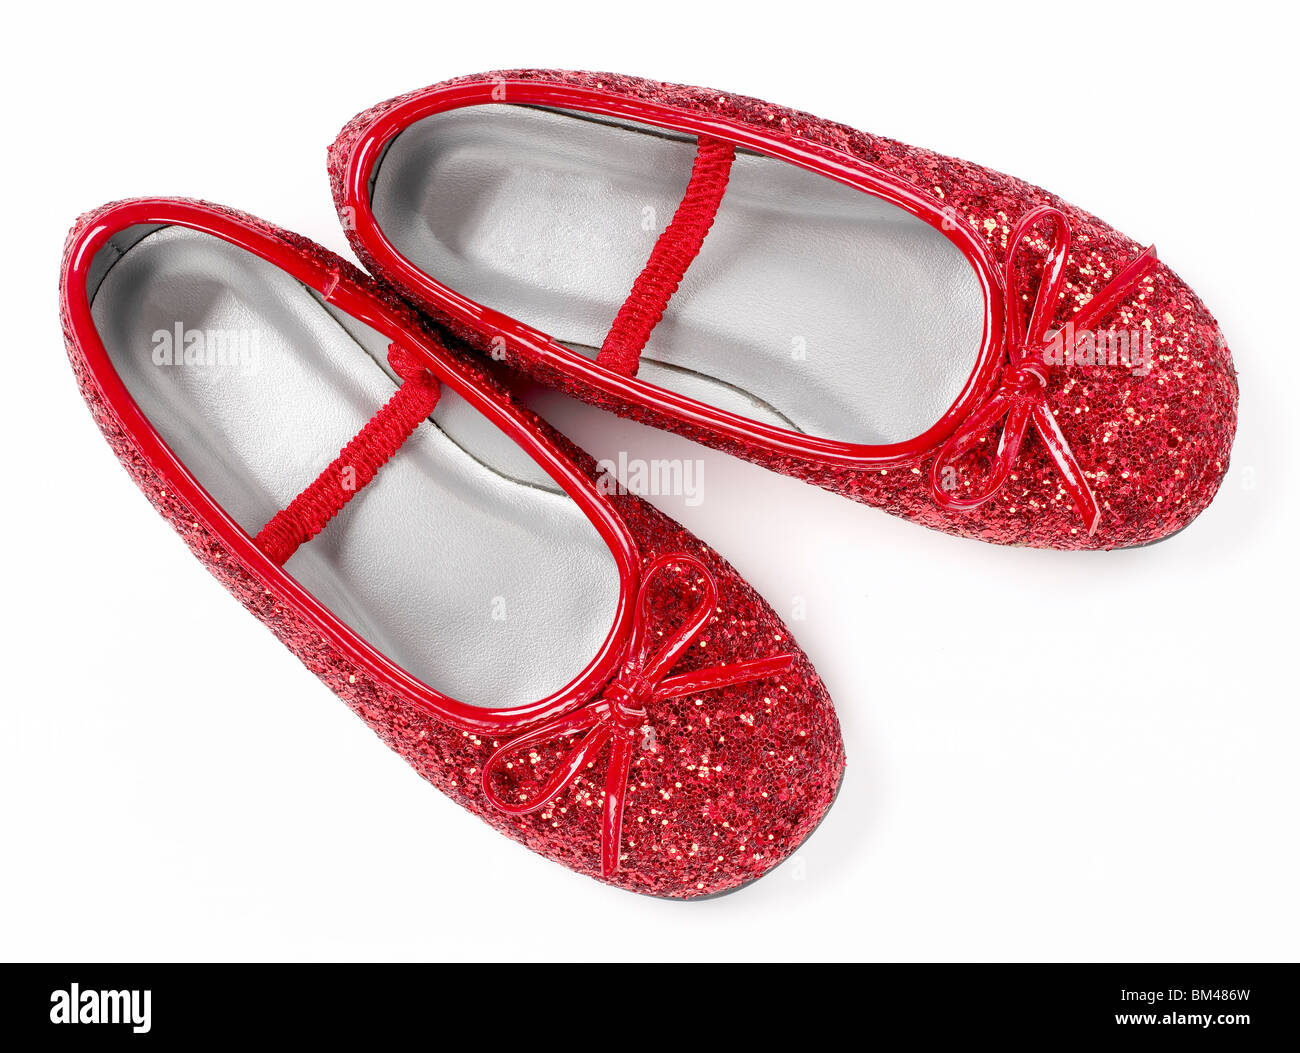 485b838ab4a Red ruby slippers shoes Stock Photo  29597761 - Alamy